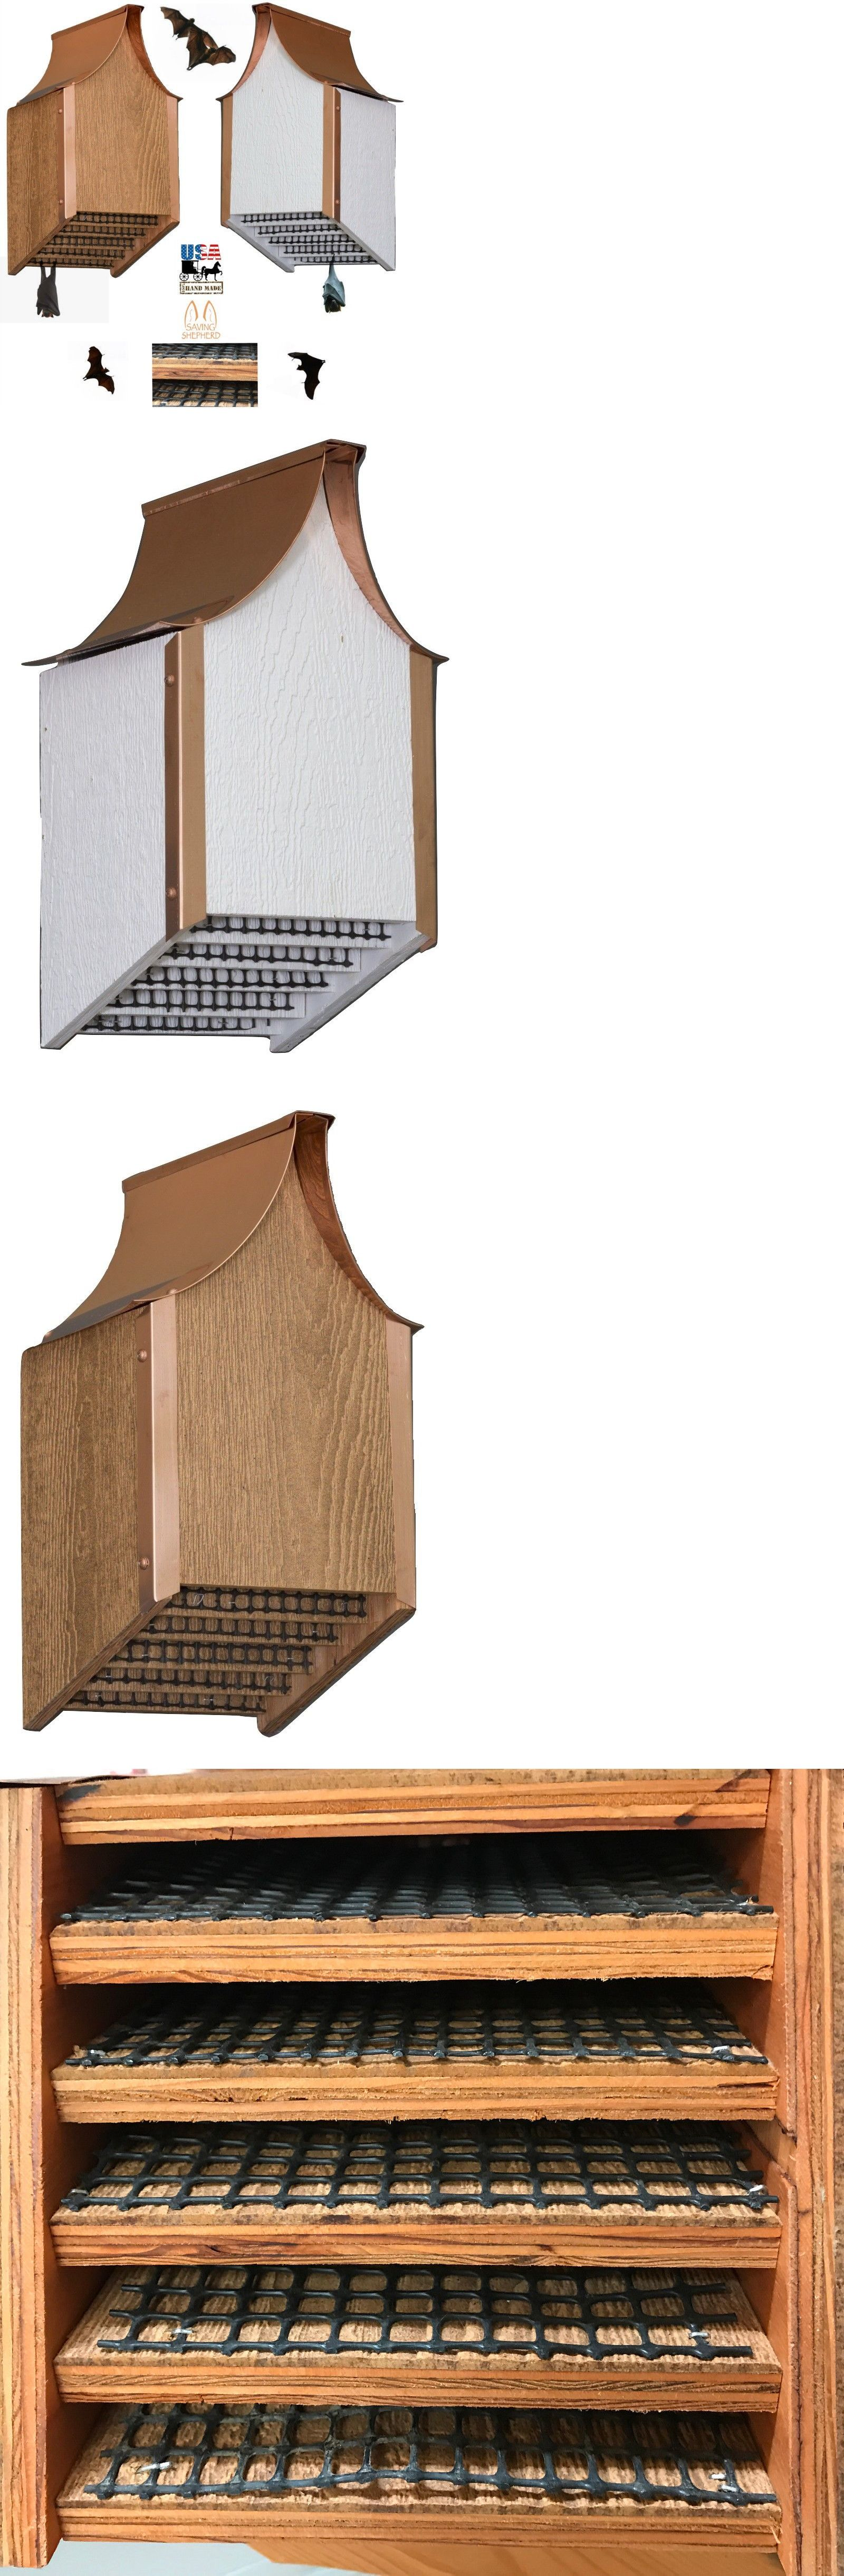 Bat And Erfly Houses 43532 Copper Roof House Amish Backyard Mosquito Control White Cedar Finish Usa It Now Only 139 97 On Ebay